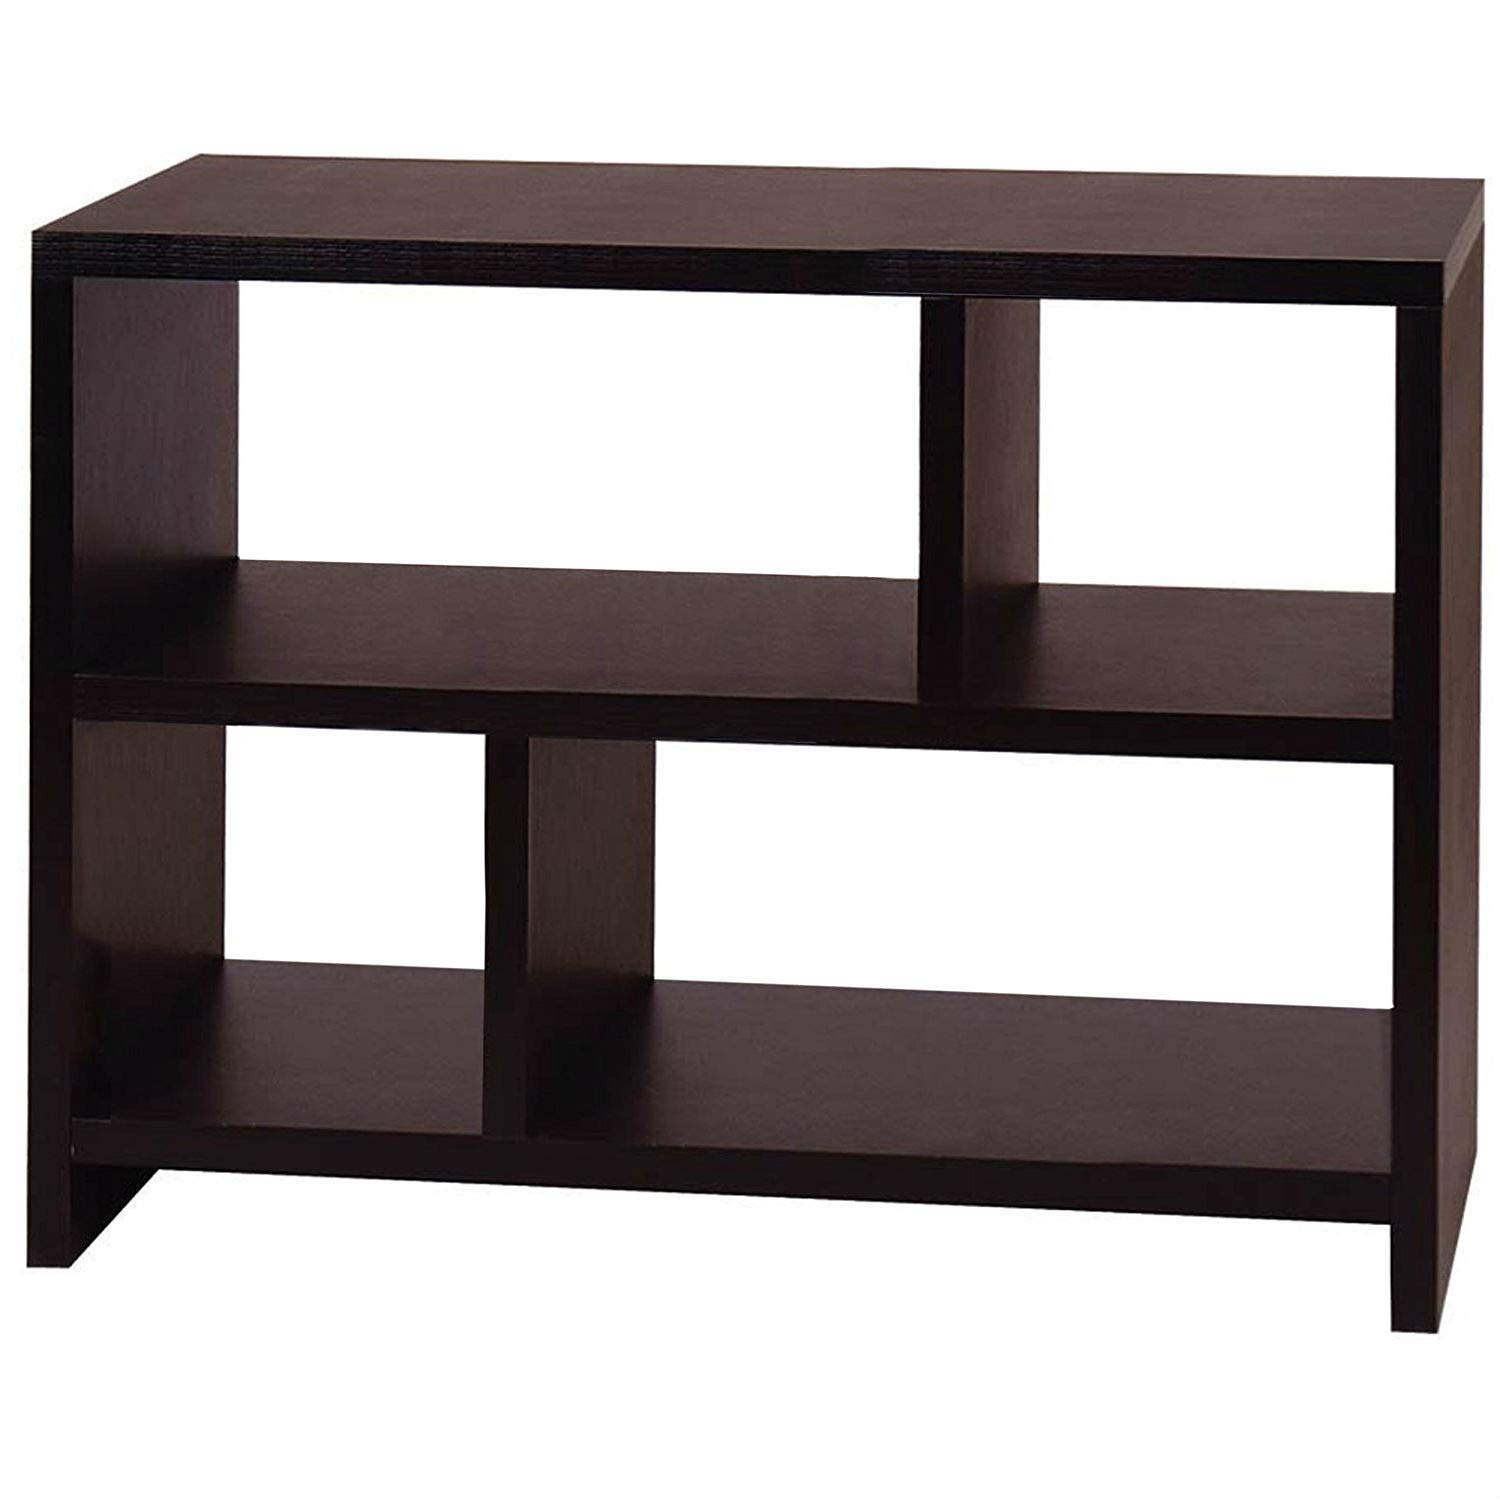 Trustpurchase Modern 2-Shelf Bookcase Console Table in Espresso Black Wood Finish, Modern Design 2-Shelf Bookcase Console Table in Espresso Brown Black Wood Finish Will Complete The Look of The Home